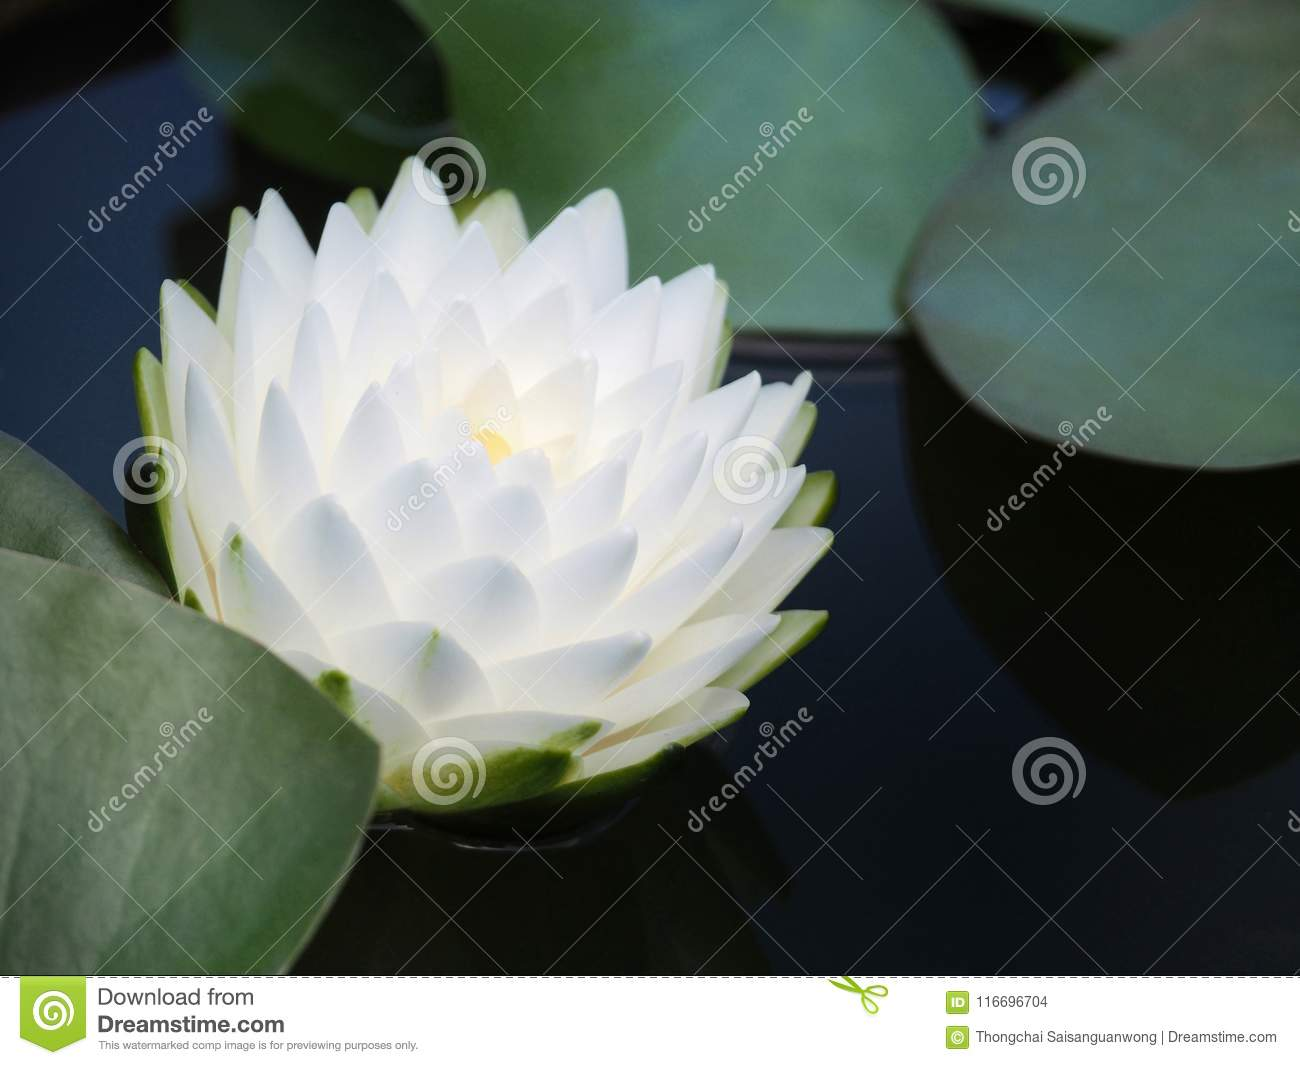 Lotus flower or water lily with green leaves beautifully blooming in lotus flower or water lily with green leaves beautifully blooming in the spa pool to decorate it is the flower of the month july is also related to art izmirmasajfo